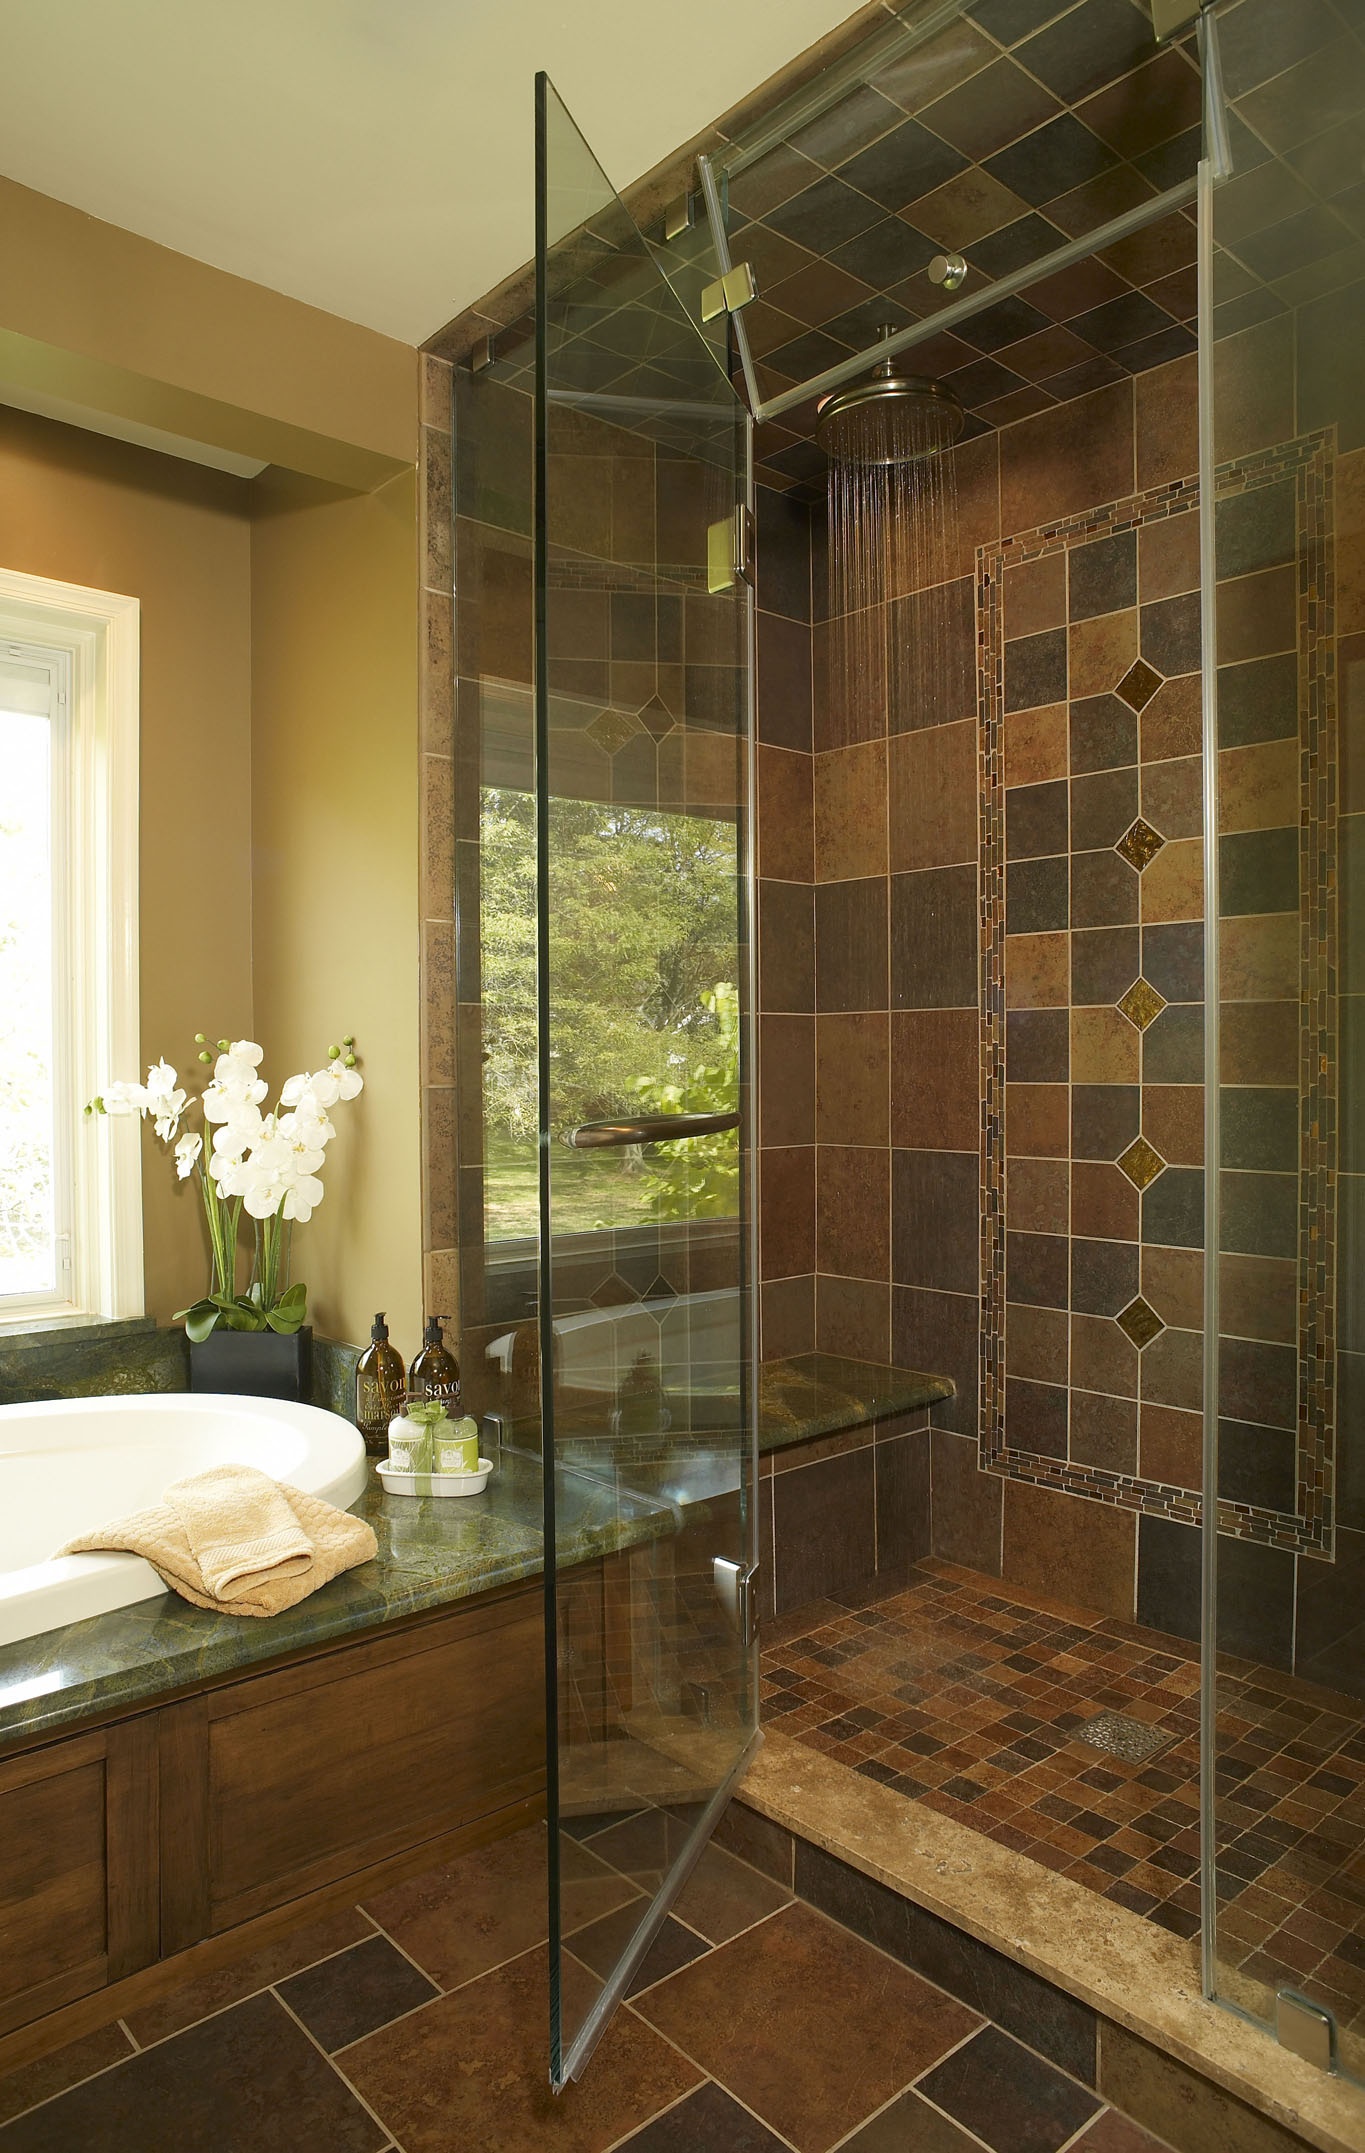 Slate Look Porcelain Tile with Glass Inserts